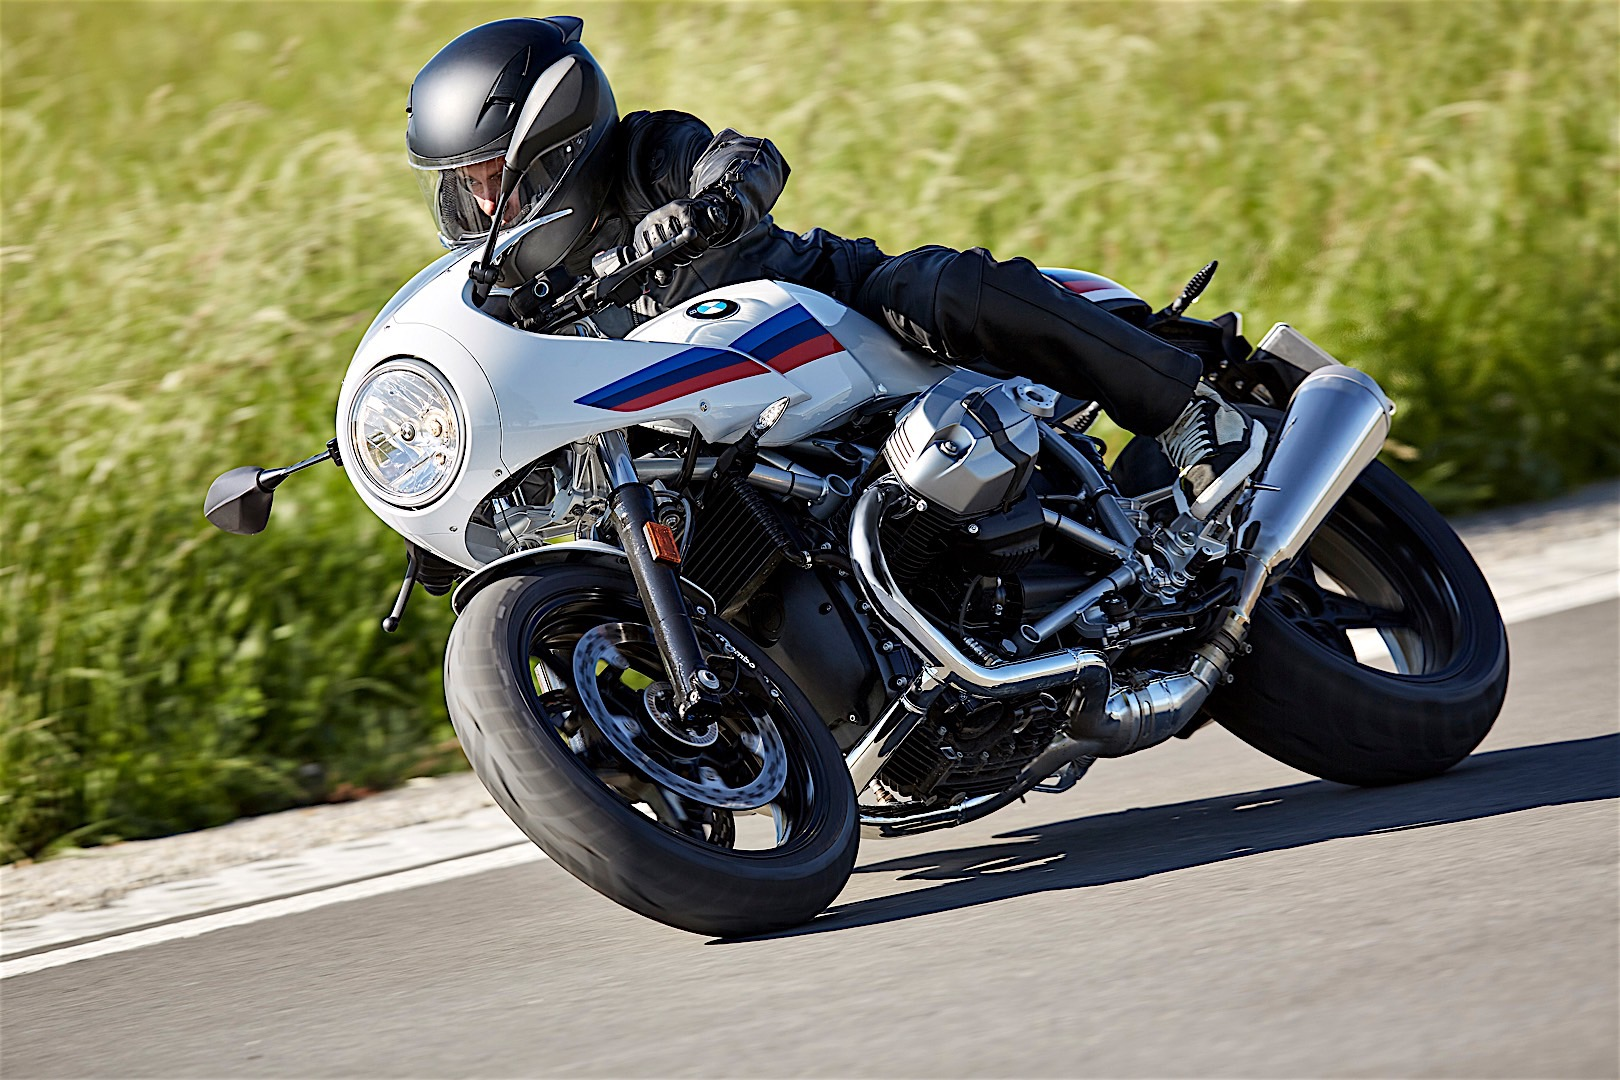 2017 bmw r ninet racer and pure unveiled at intermot. Black Bedroom Furniture Sets. Home Design Ideas